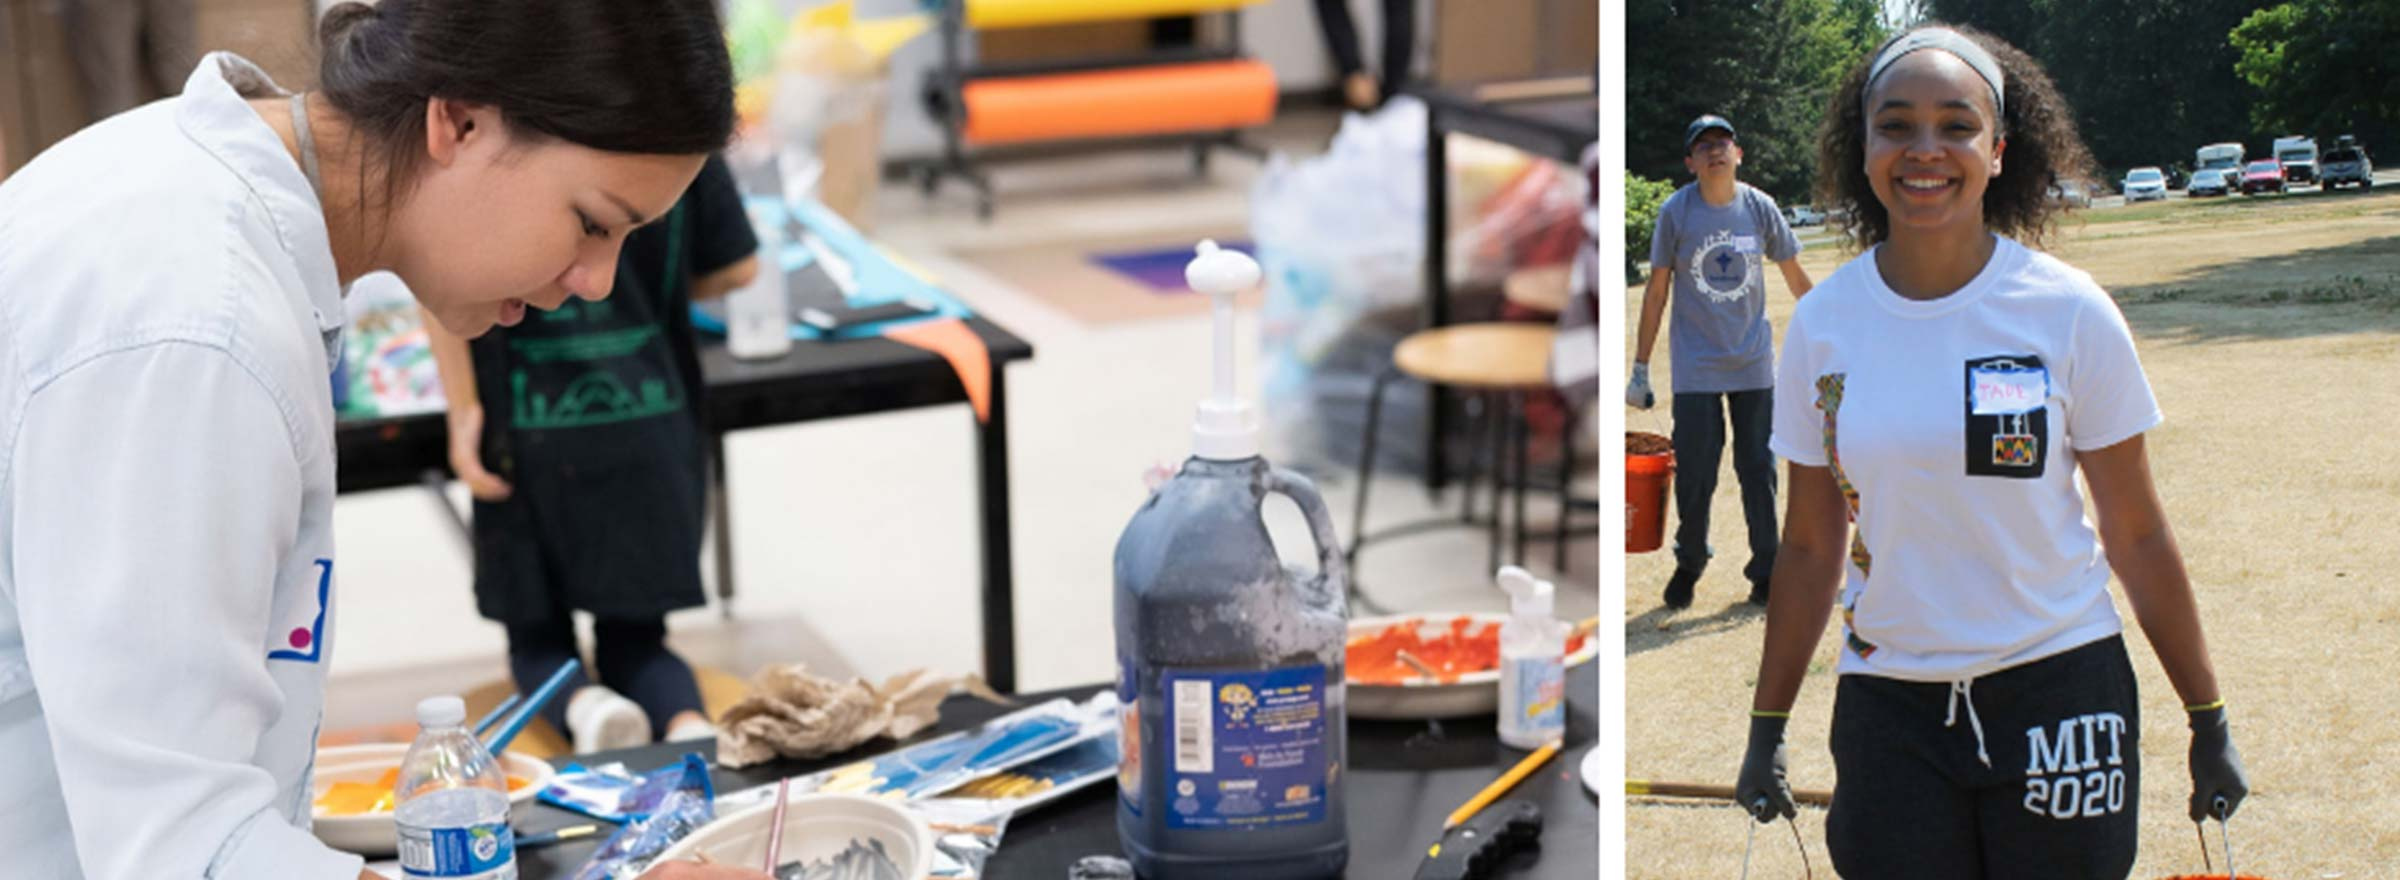 left image: young woman engaging in a craft; right image: young woman carrying two buckets